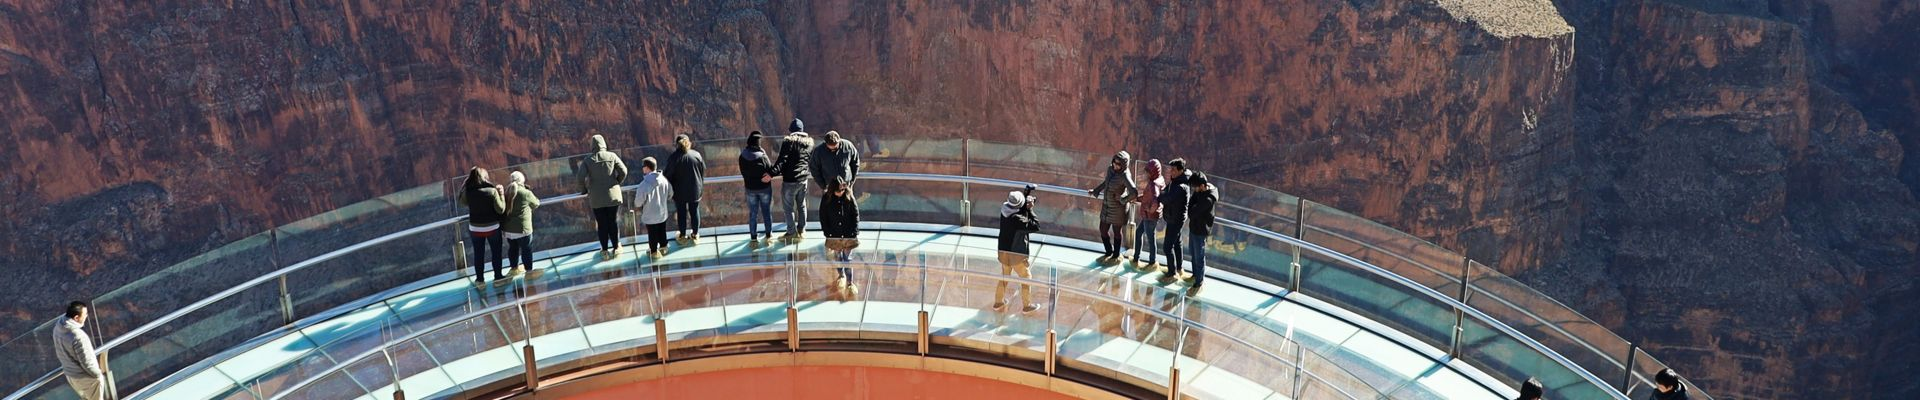 View of the Grand Canyon Skywalk from above with people enjoying the views of Grand Canyon West Rim on a bright sunny day on the Grand Voyager with Skywalk Tour